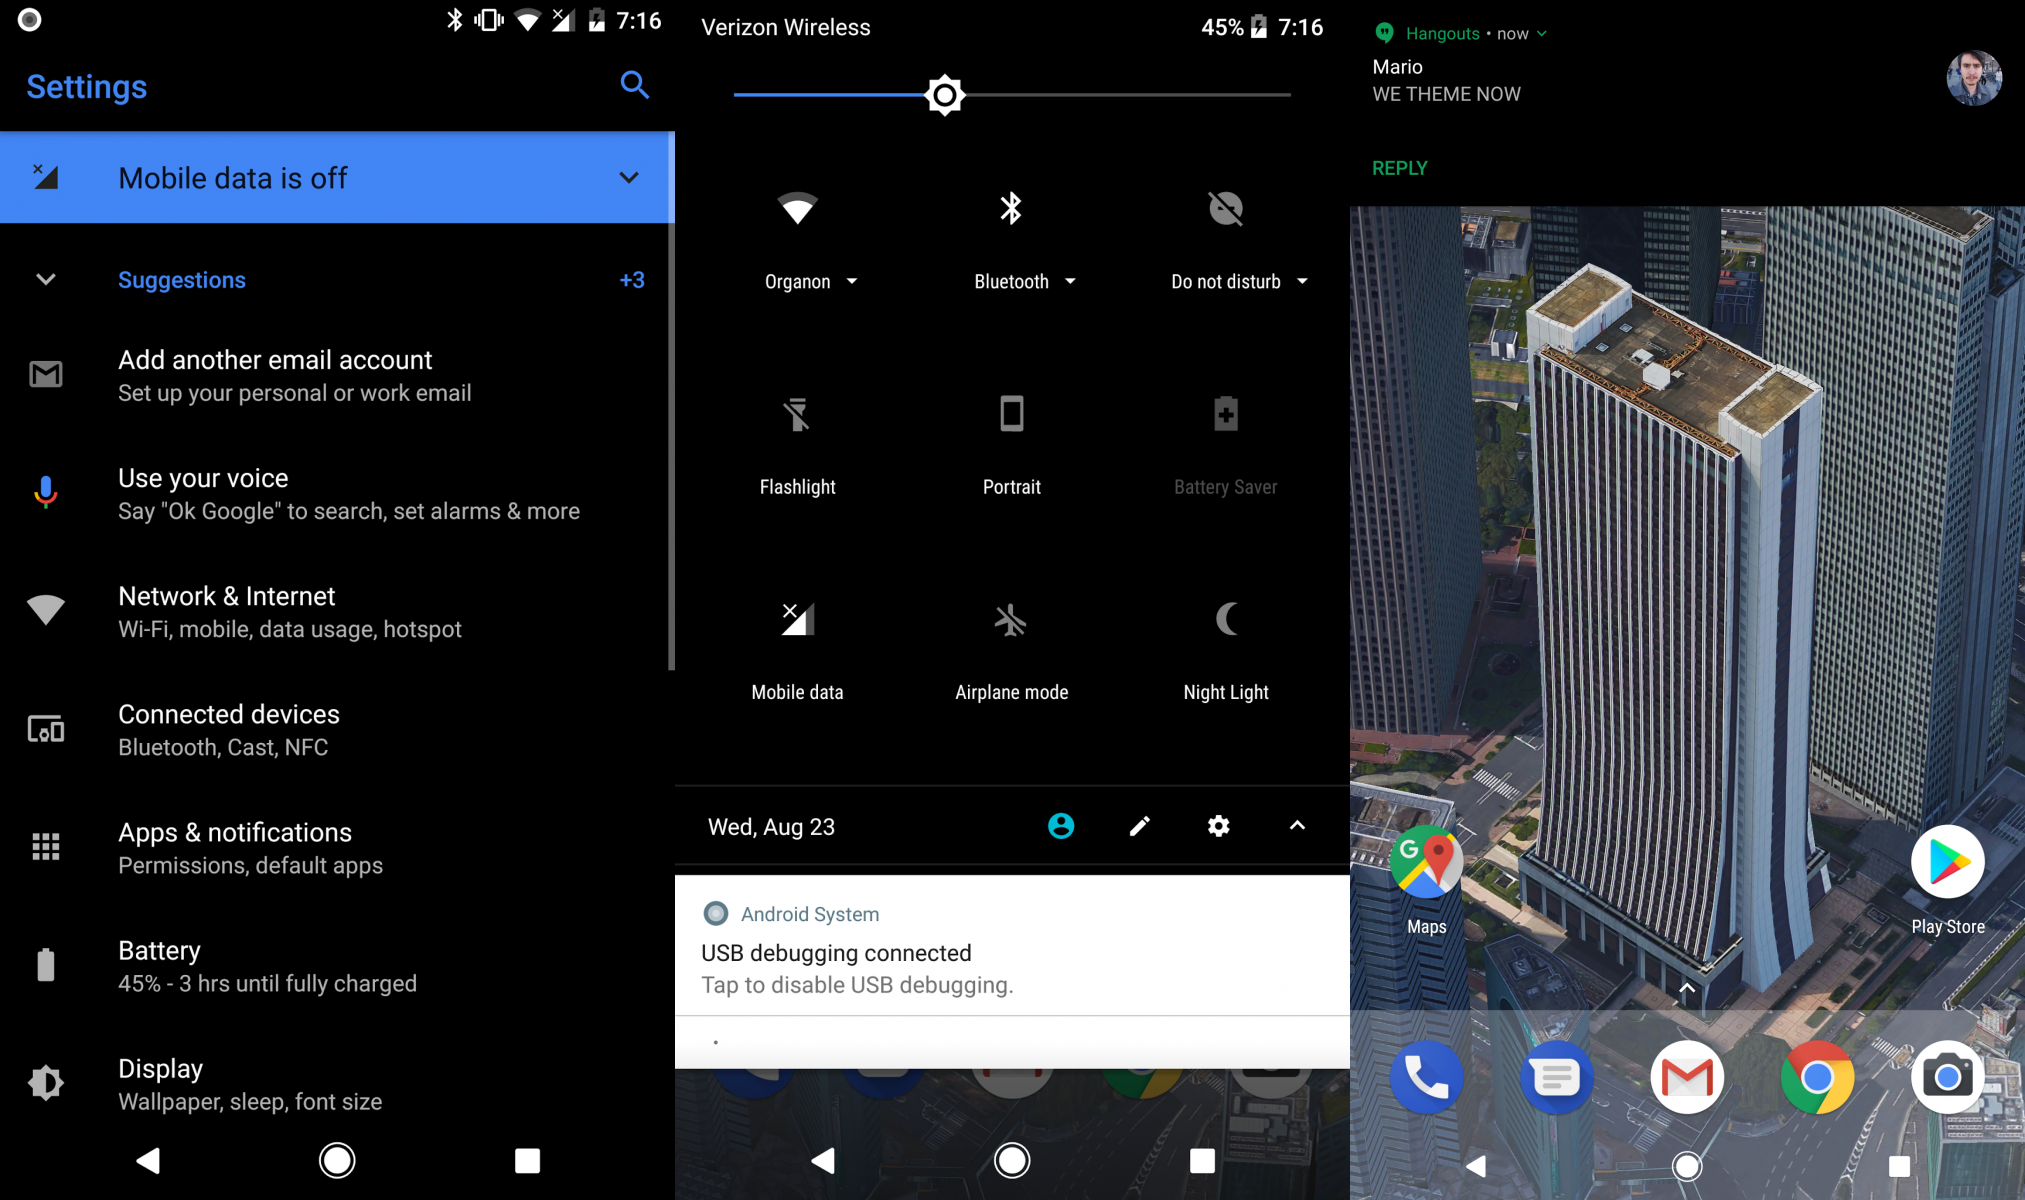 Android Oreo will have system-wide theme support without root